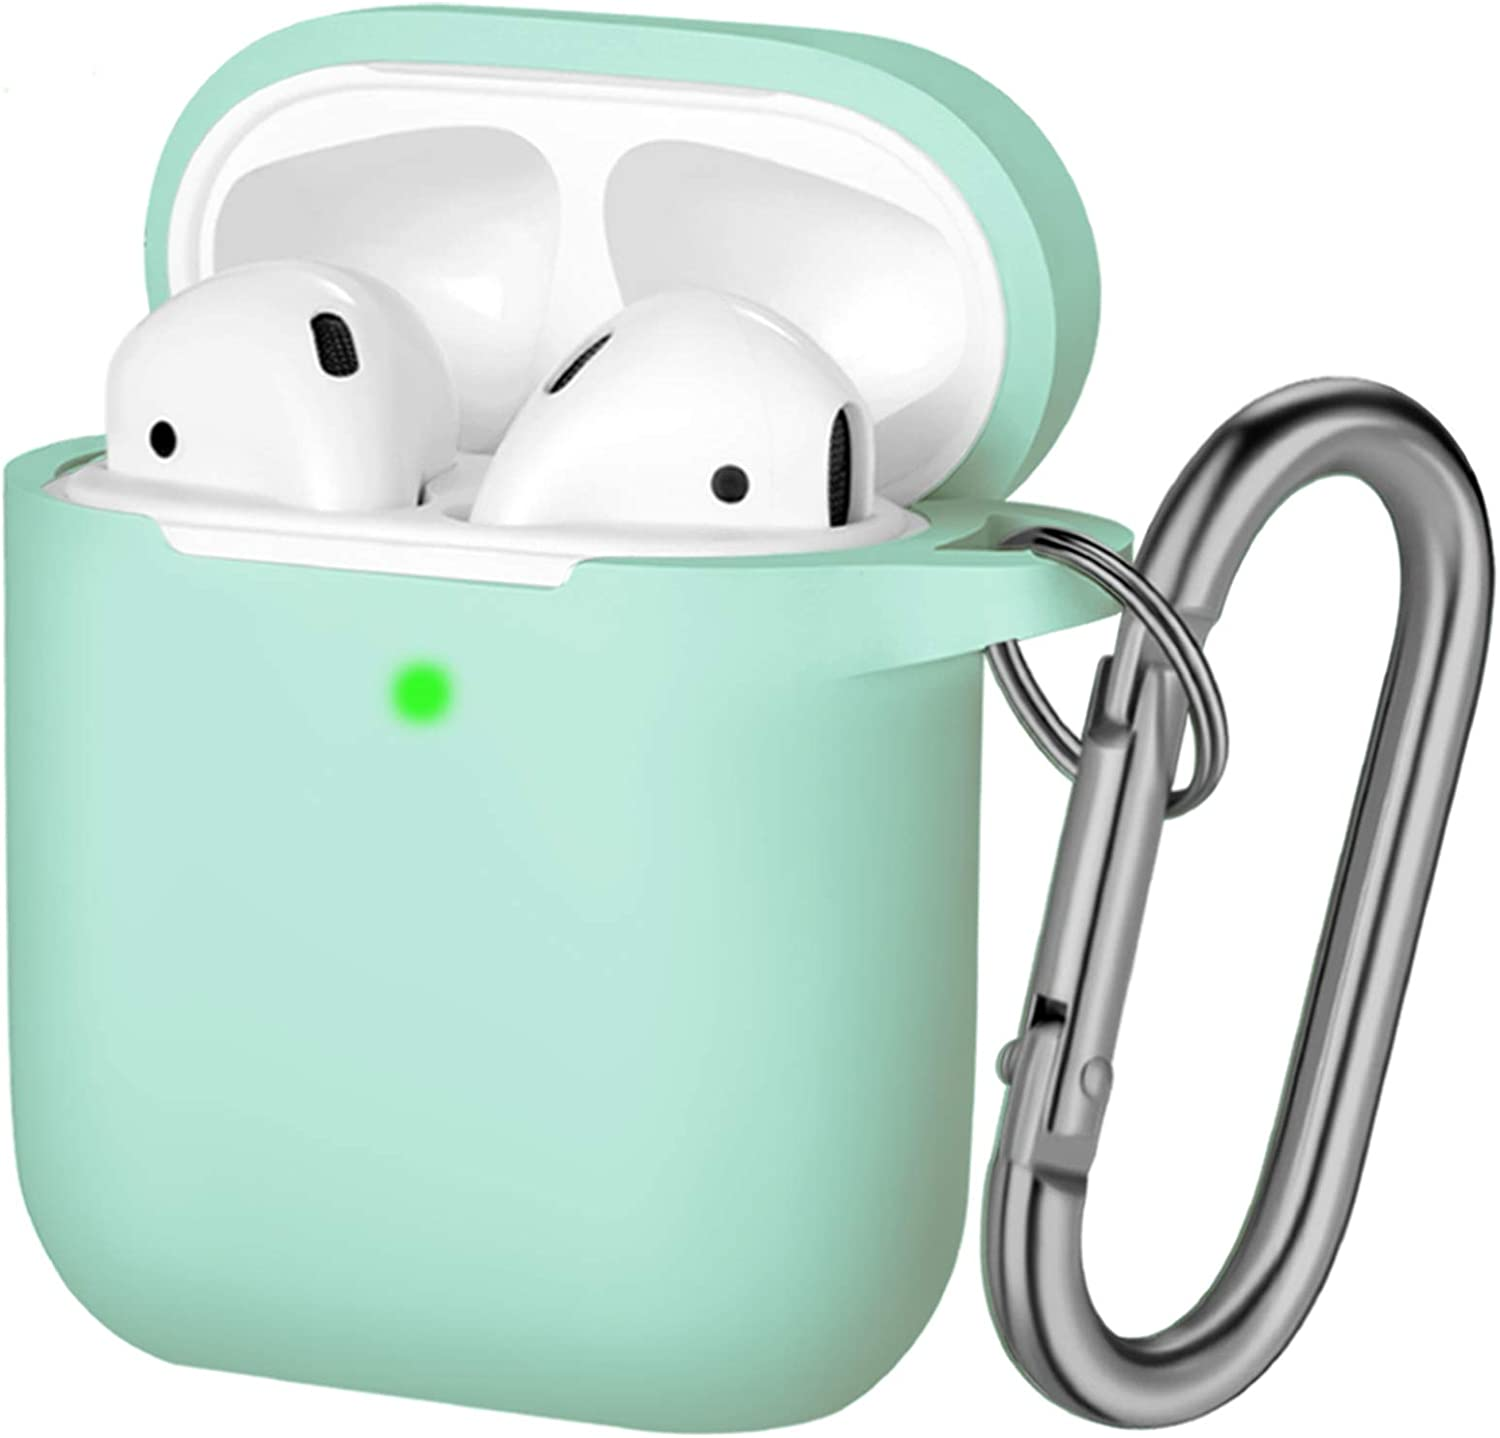 Hamile Compatible with AirPods Case [Front LED Visible] Soft Silicone Protective Cases Cover Skin Designed for Apple AirPod 2 & 1, Women Men, with Keychain (Mint Green)